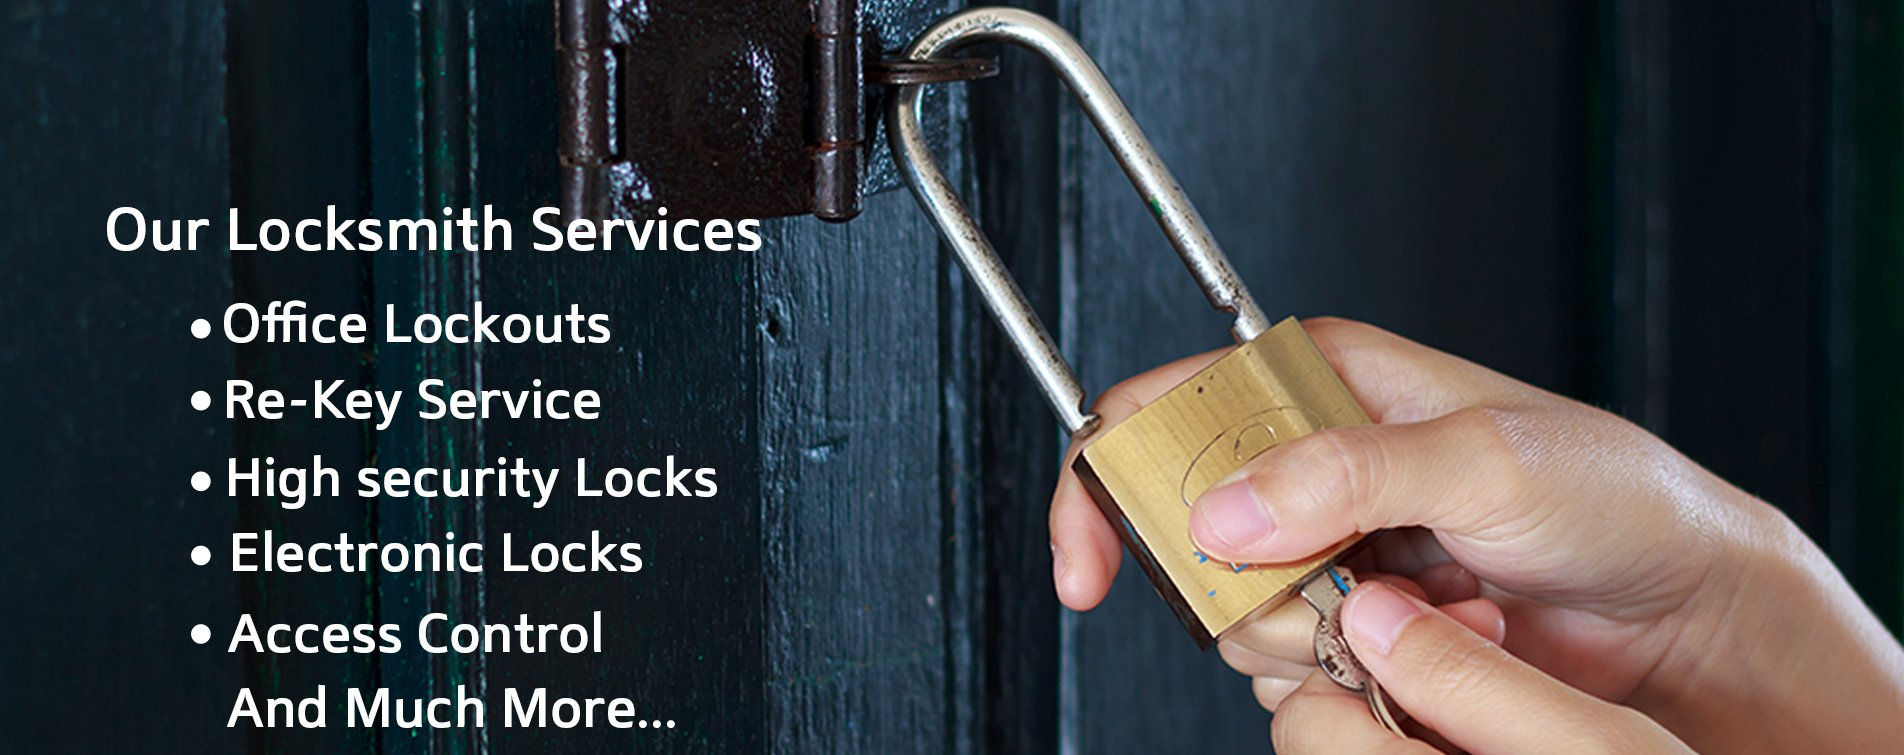 Englewood Locksmith Store, Englewood, OH 937-697-3007